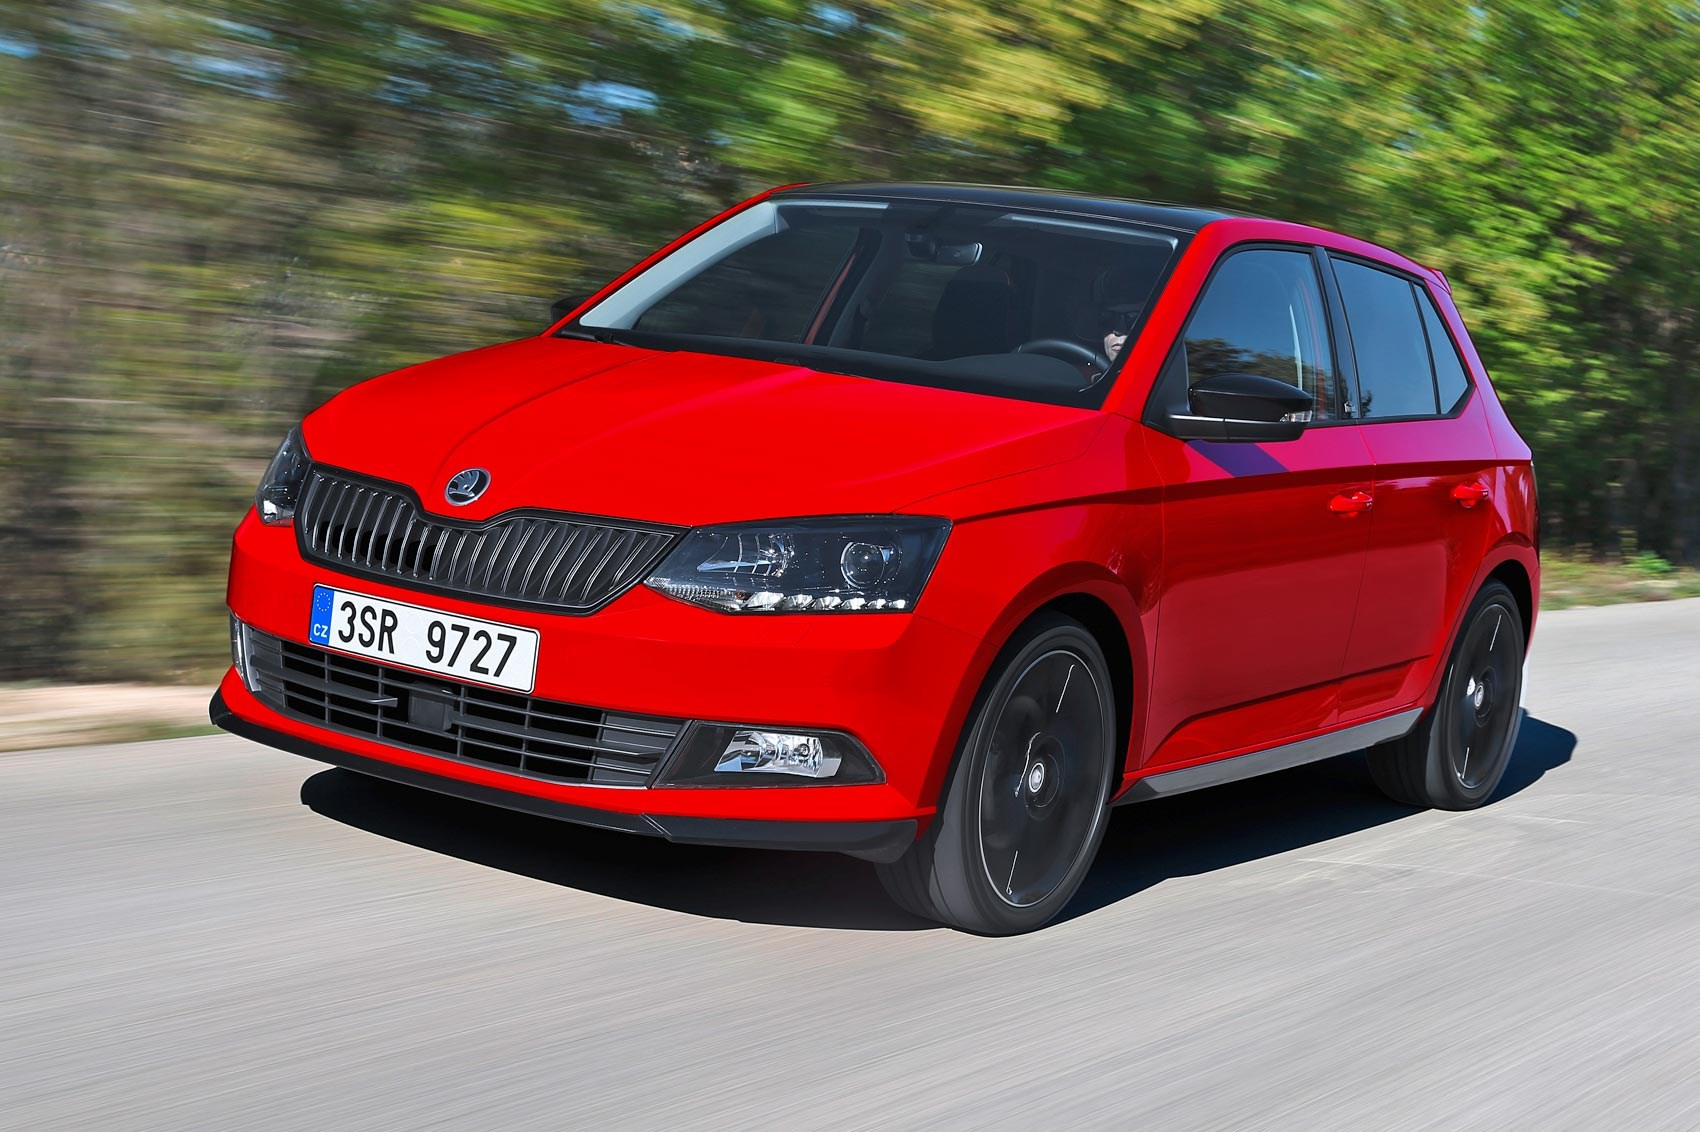 Murray Skoda Plymouth Used Cars Skoda Fabia 1 2 Tsi 90ps Monte Carlo 2016 Review By Car